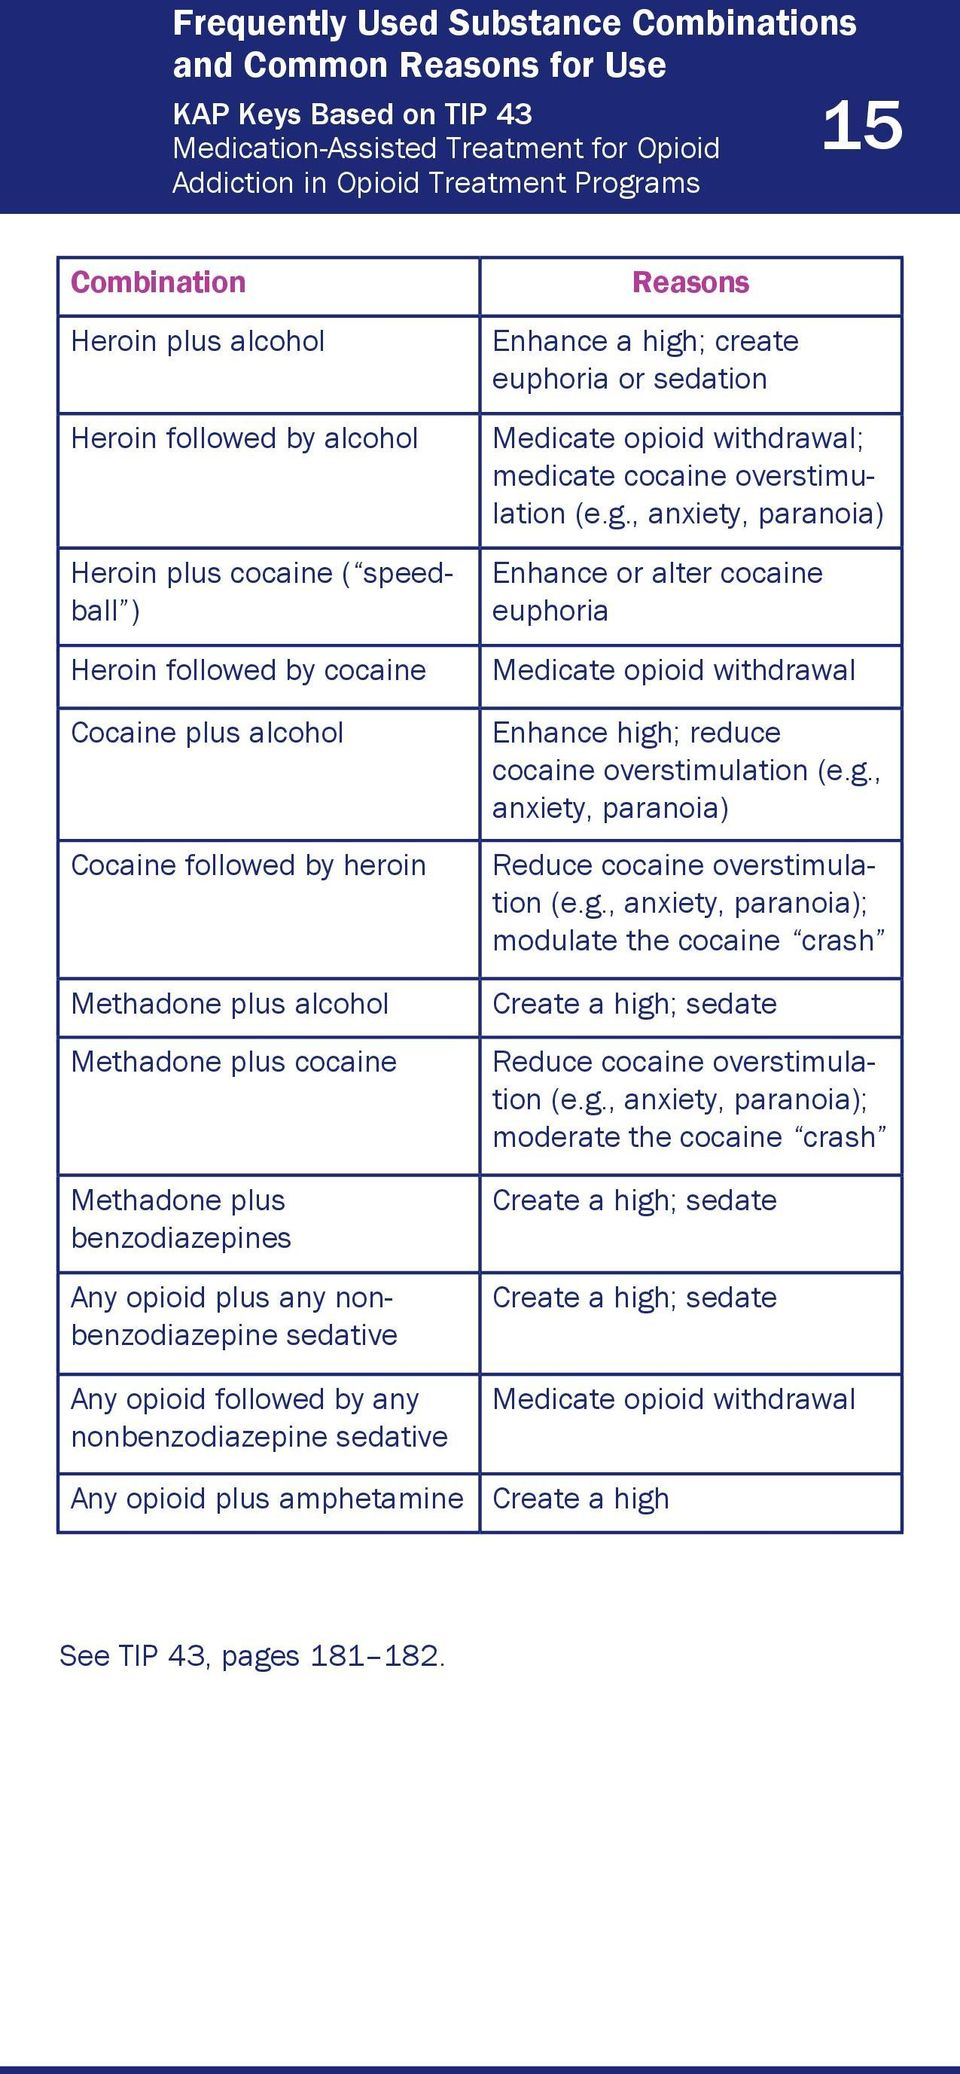 nonbenzodiazepine sedative Reasons Enhance a high;; create euphoria or sedation Medicate opioid withdrawal;; medicate cocaine overstimu- Enhance or alter cocaine euphoria Medicate opioid withdrawal